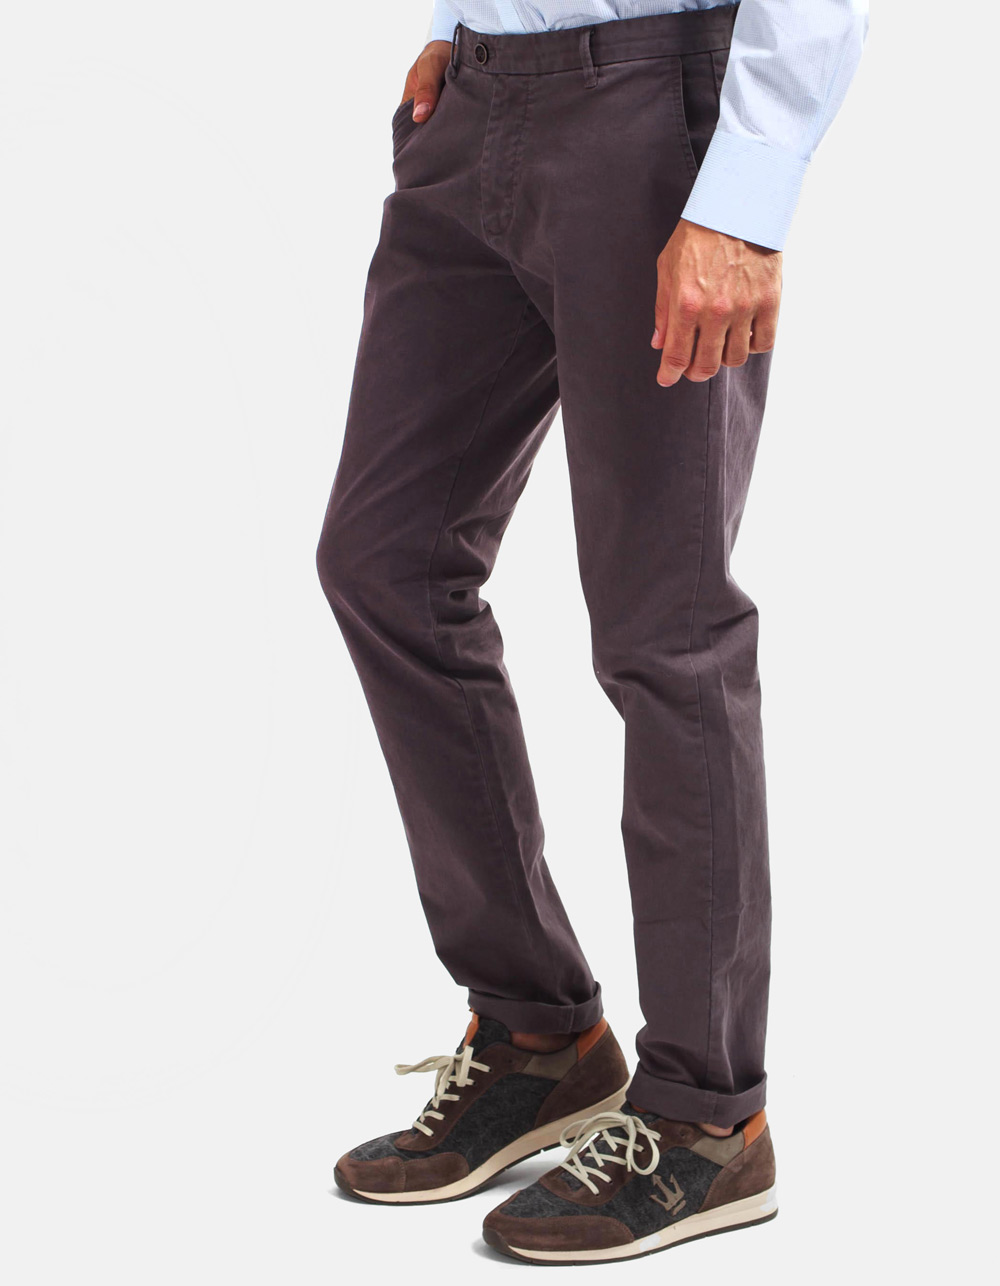 Grey chinos trousers